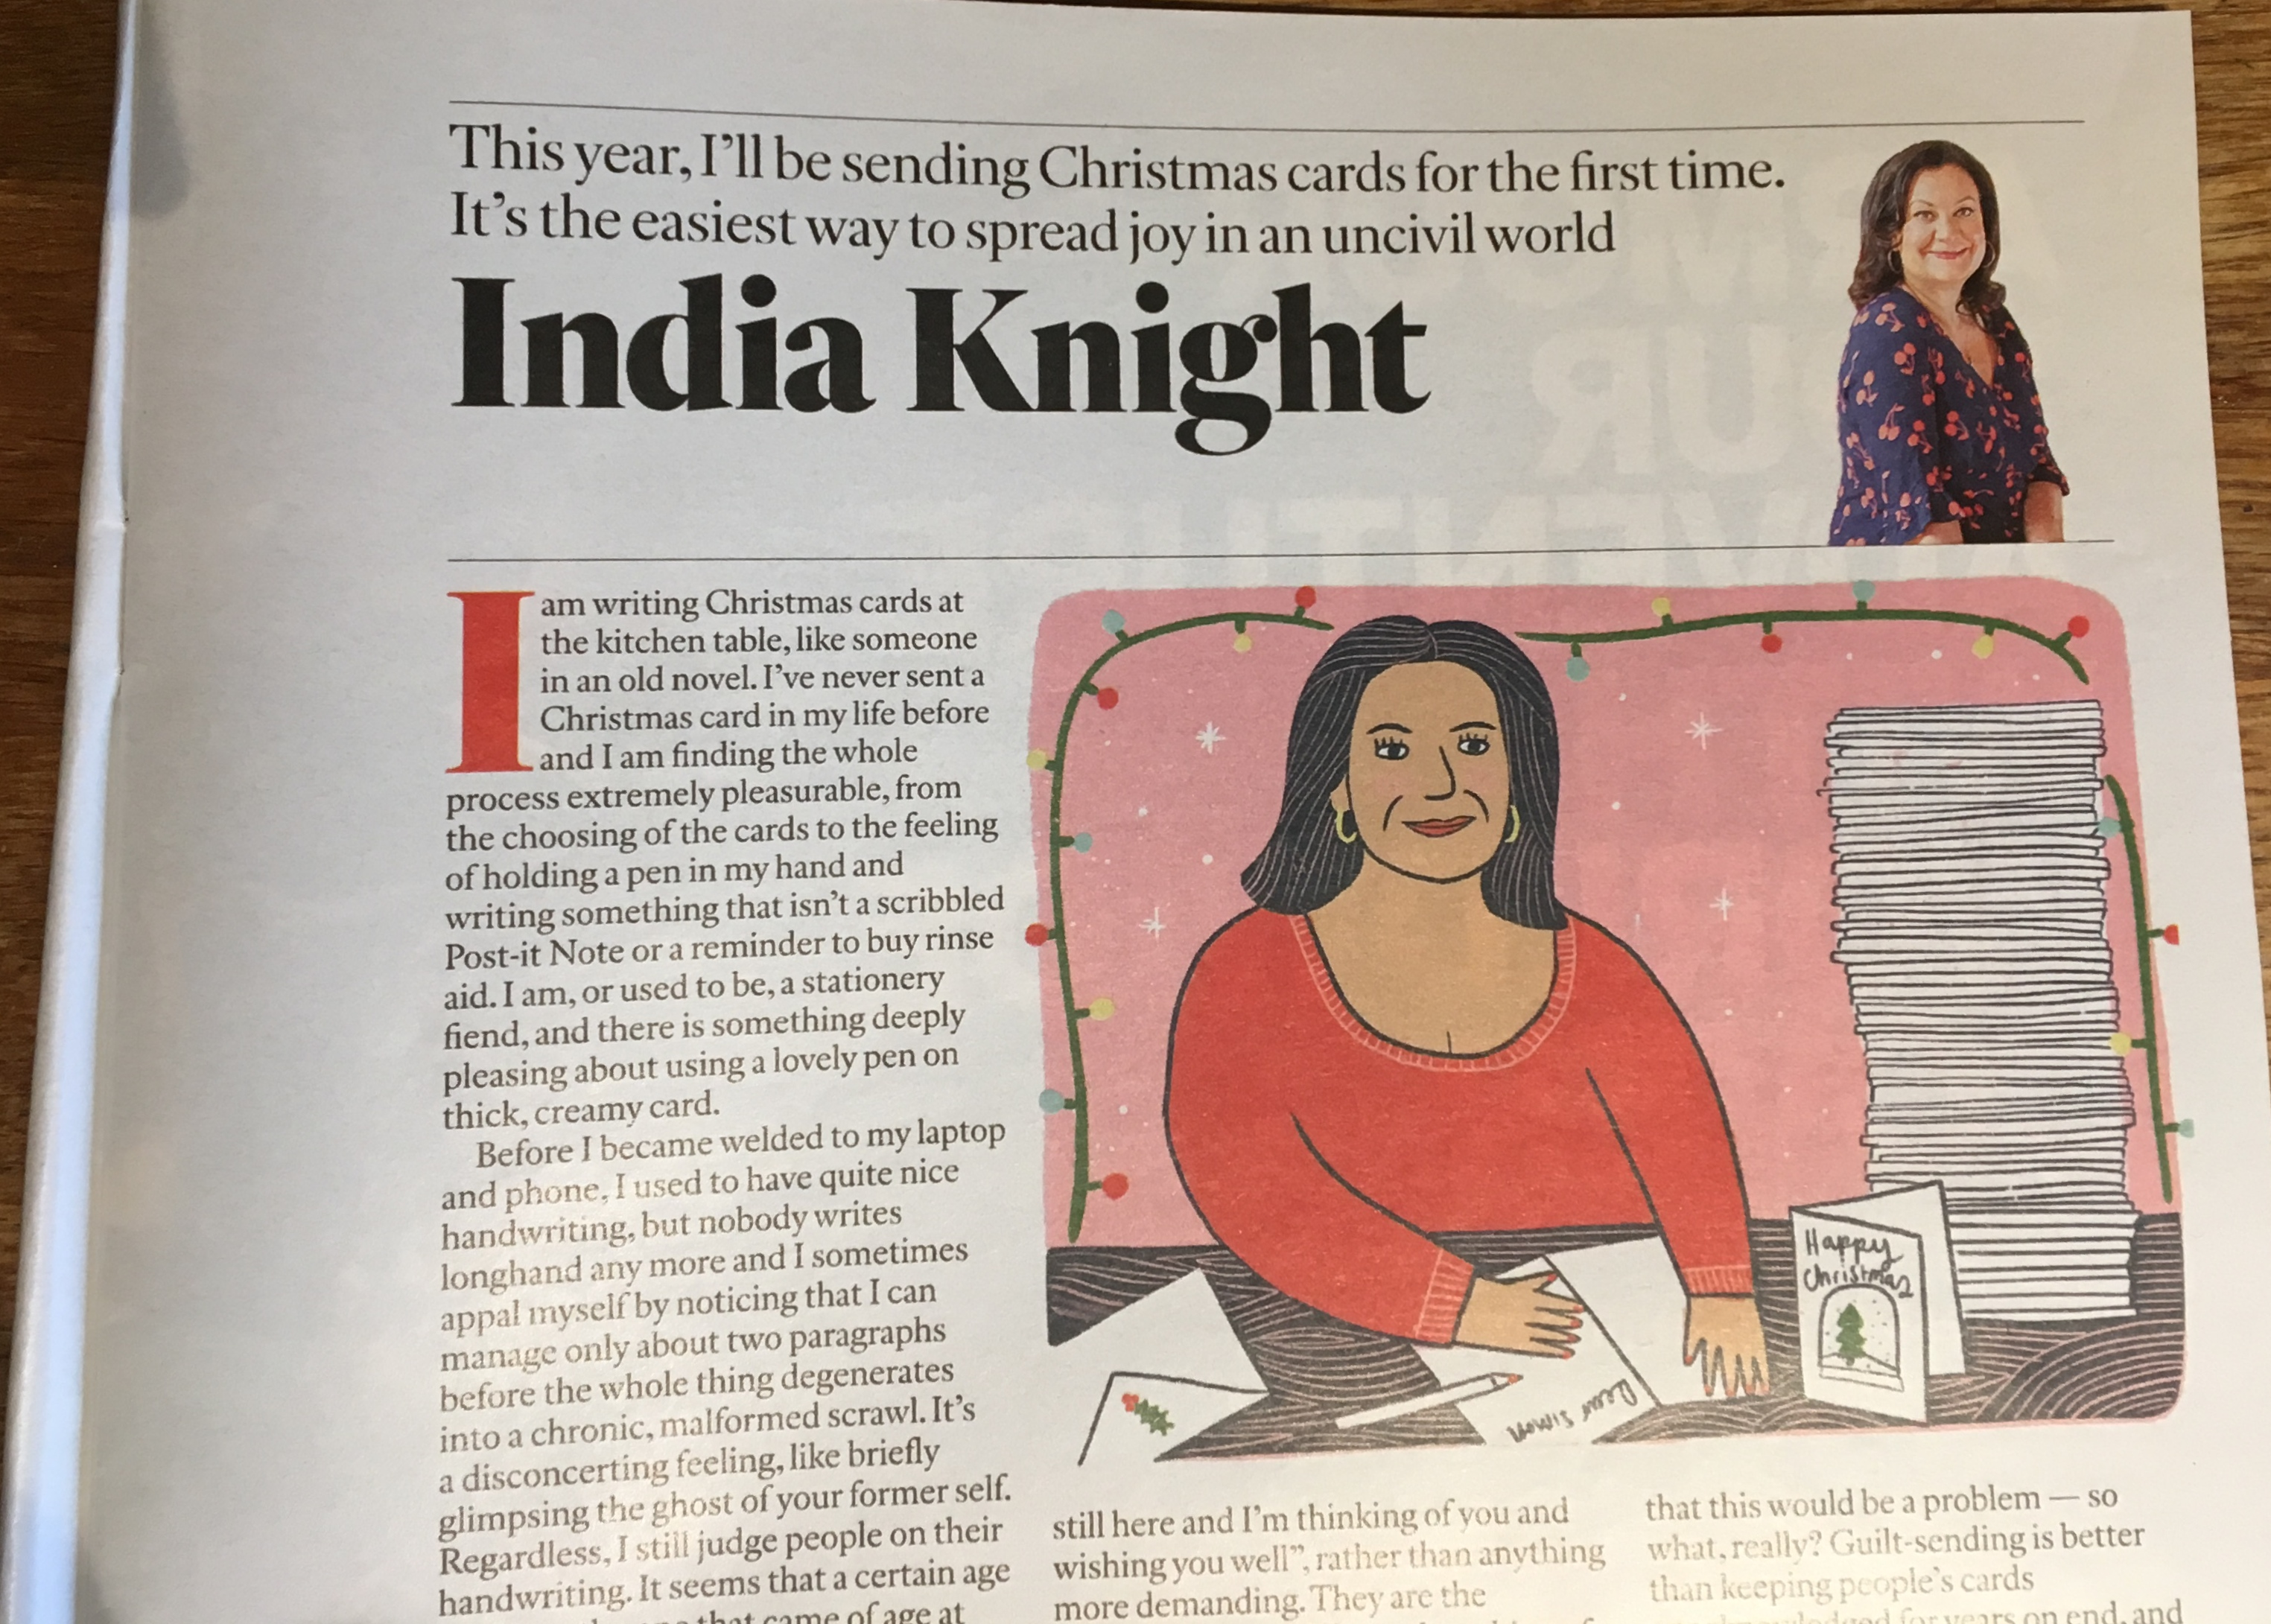 Above: An excerpt of the India Knight column that appeared in the Sunday Times magazine on Sunday 8 December.